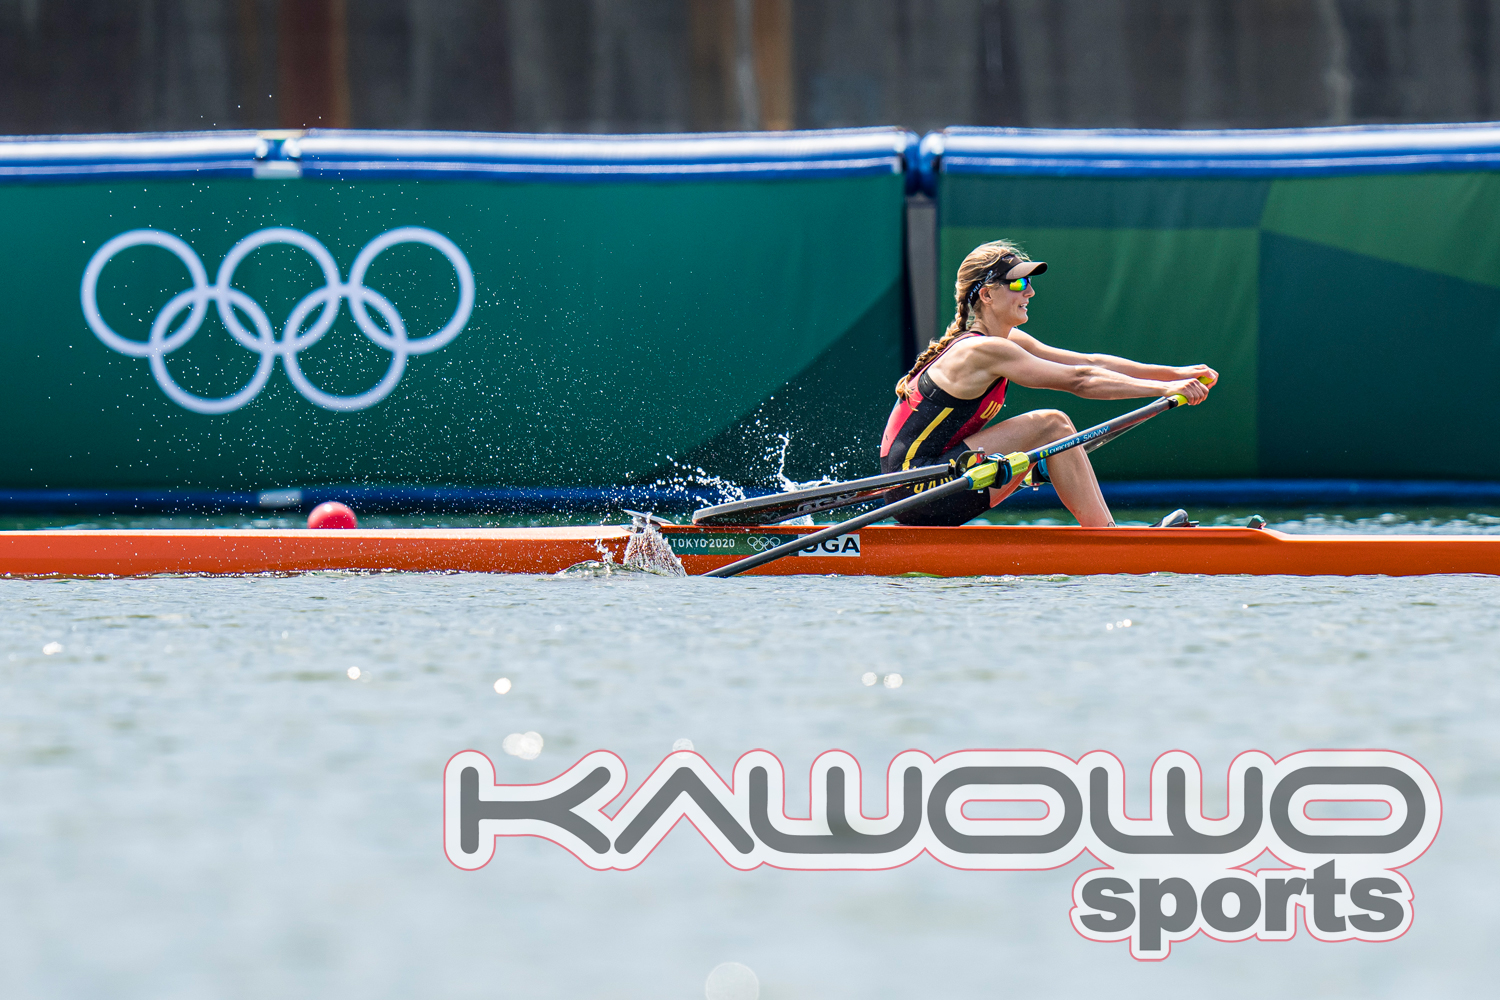 Uganda's rower Kathleen Noble records personal best time at Tokyo Olympics